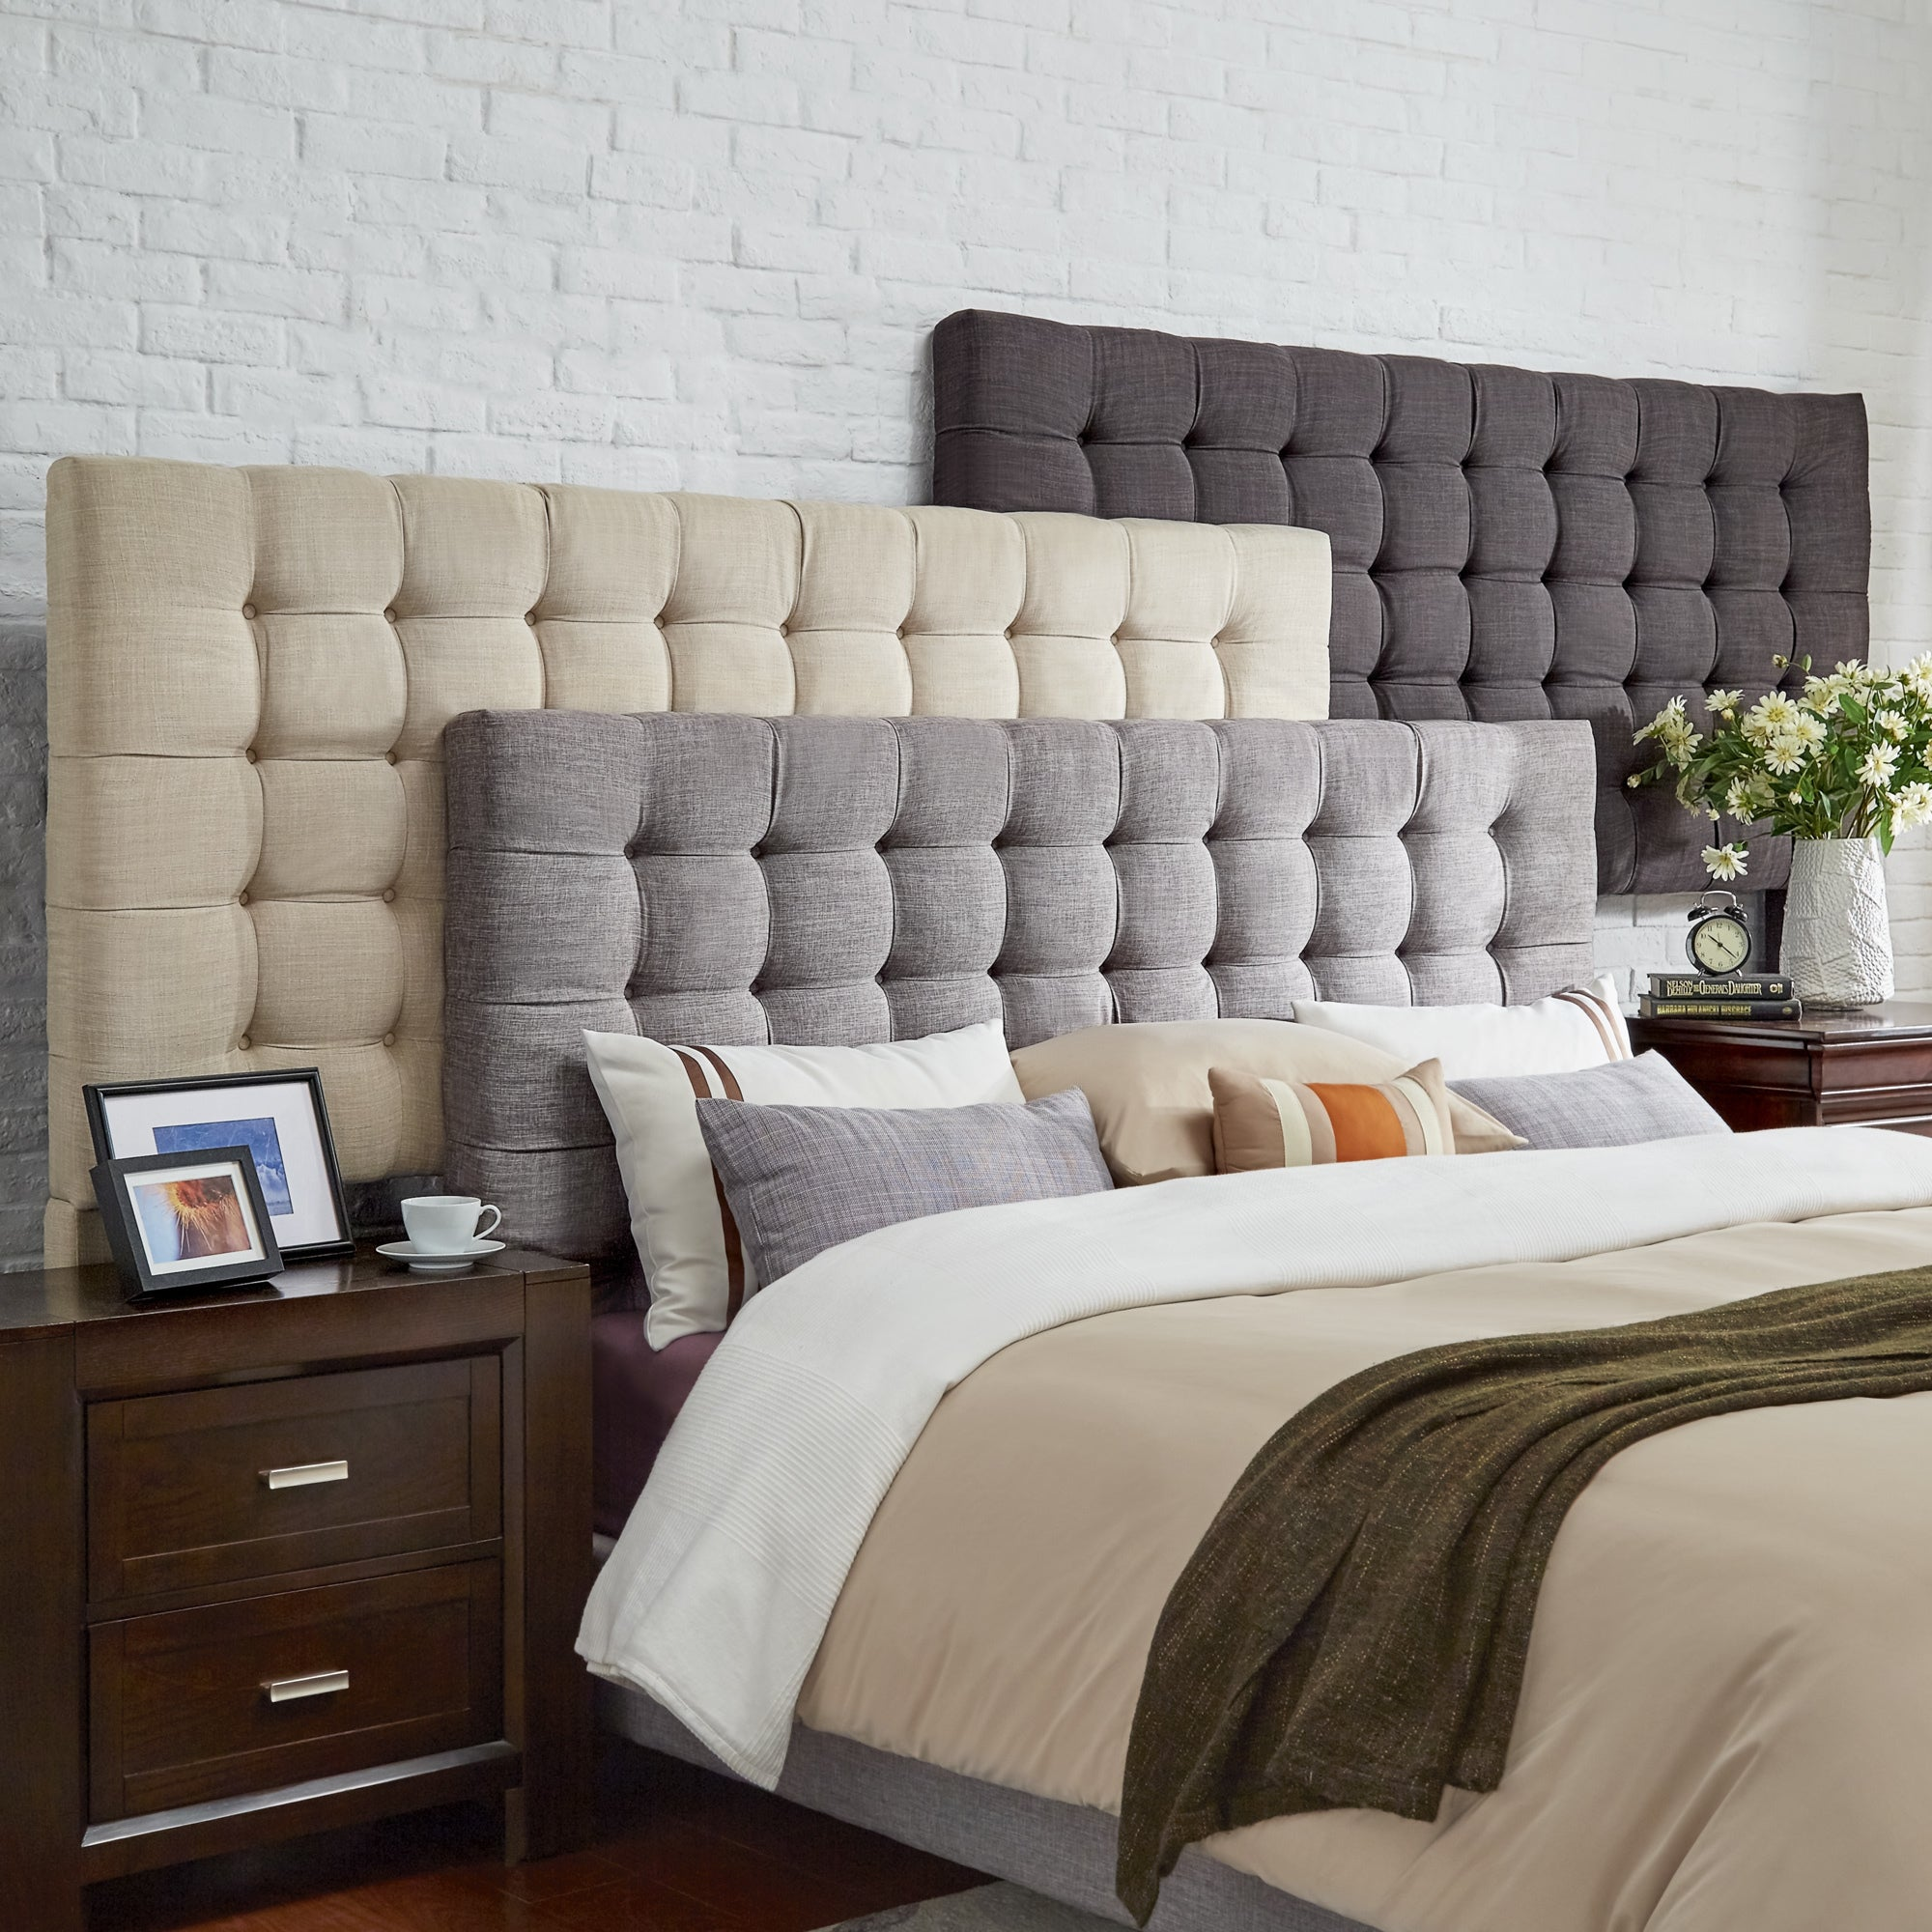 Briella Button Tufted Linen Upholstered Headboard iNSPIRE...